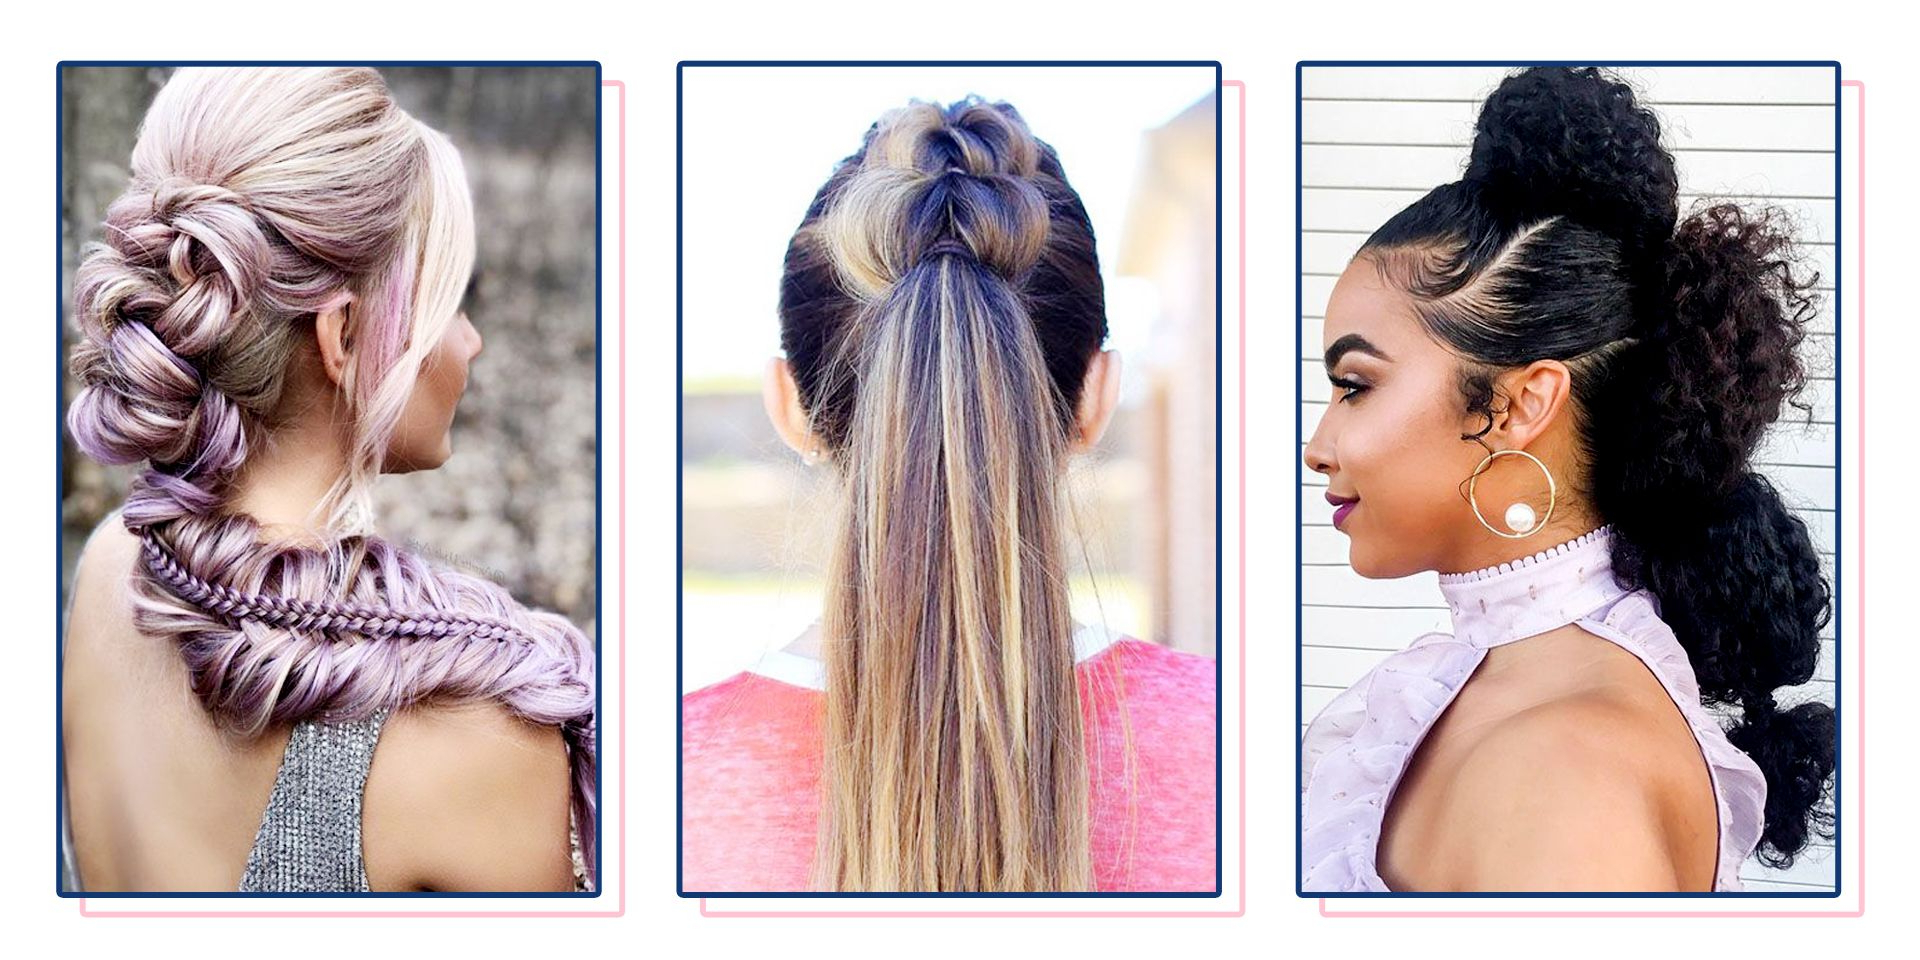 40 Best Prom Updos For 2019 – Easy Prom Updo Hairstyles Pertaining To 2017 Double Twist And Curls To One Side Prom Hairstyles (Gallery 7 of 20)